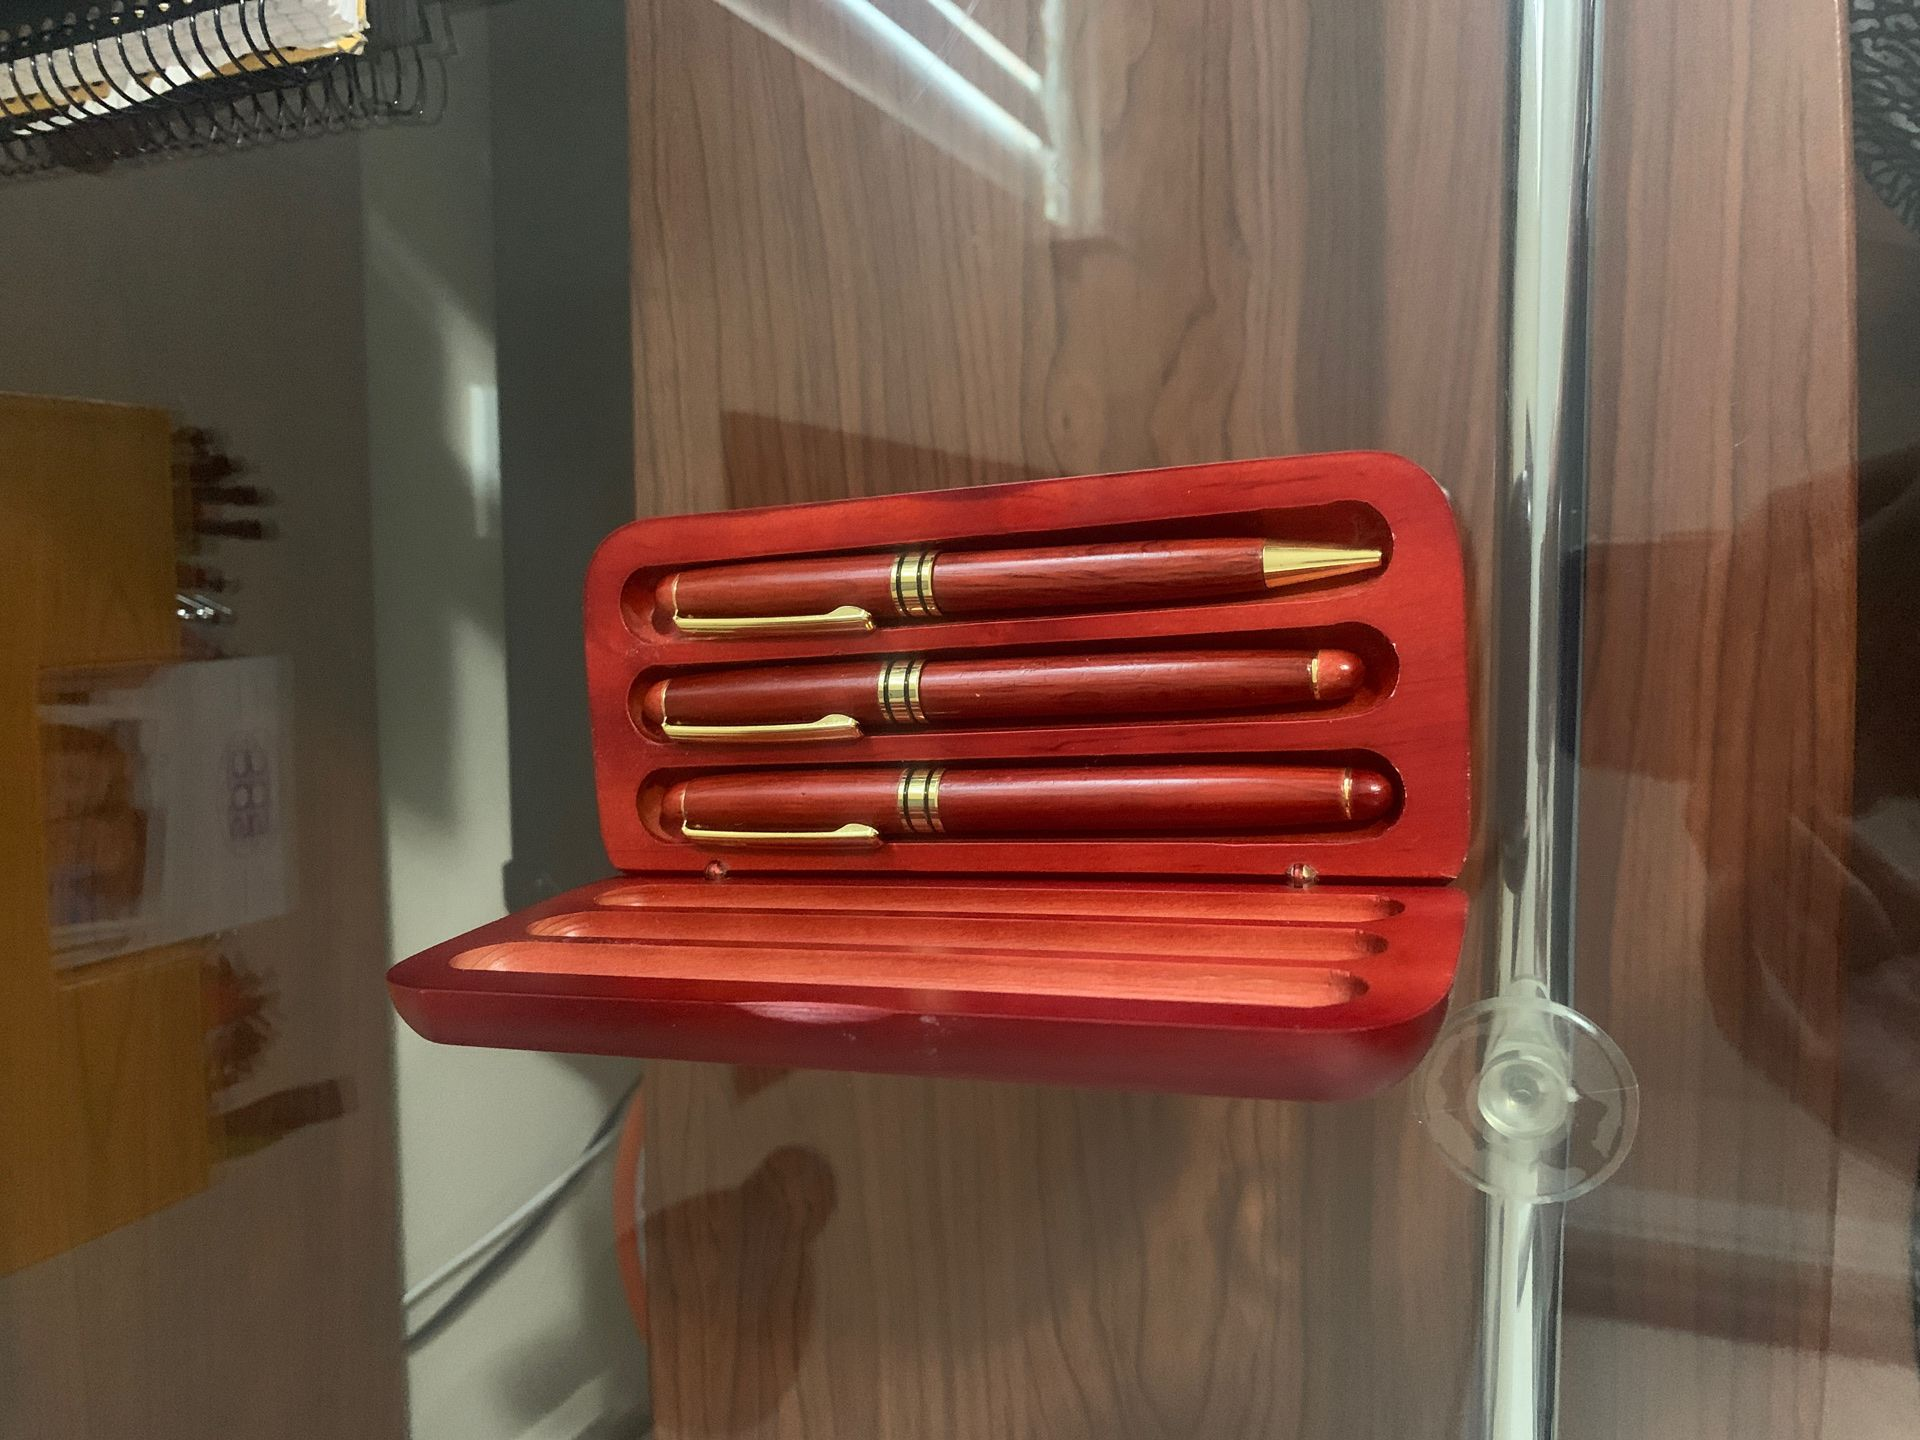 Rosewood Pen Set - Gel, Ballpoint, and Fountain Pen - With Rosewood Case